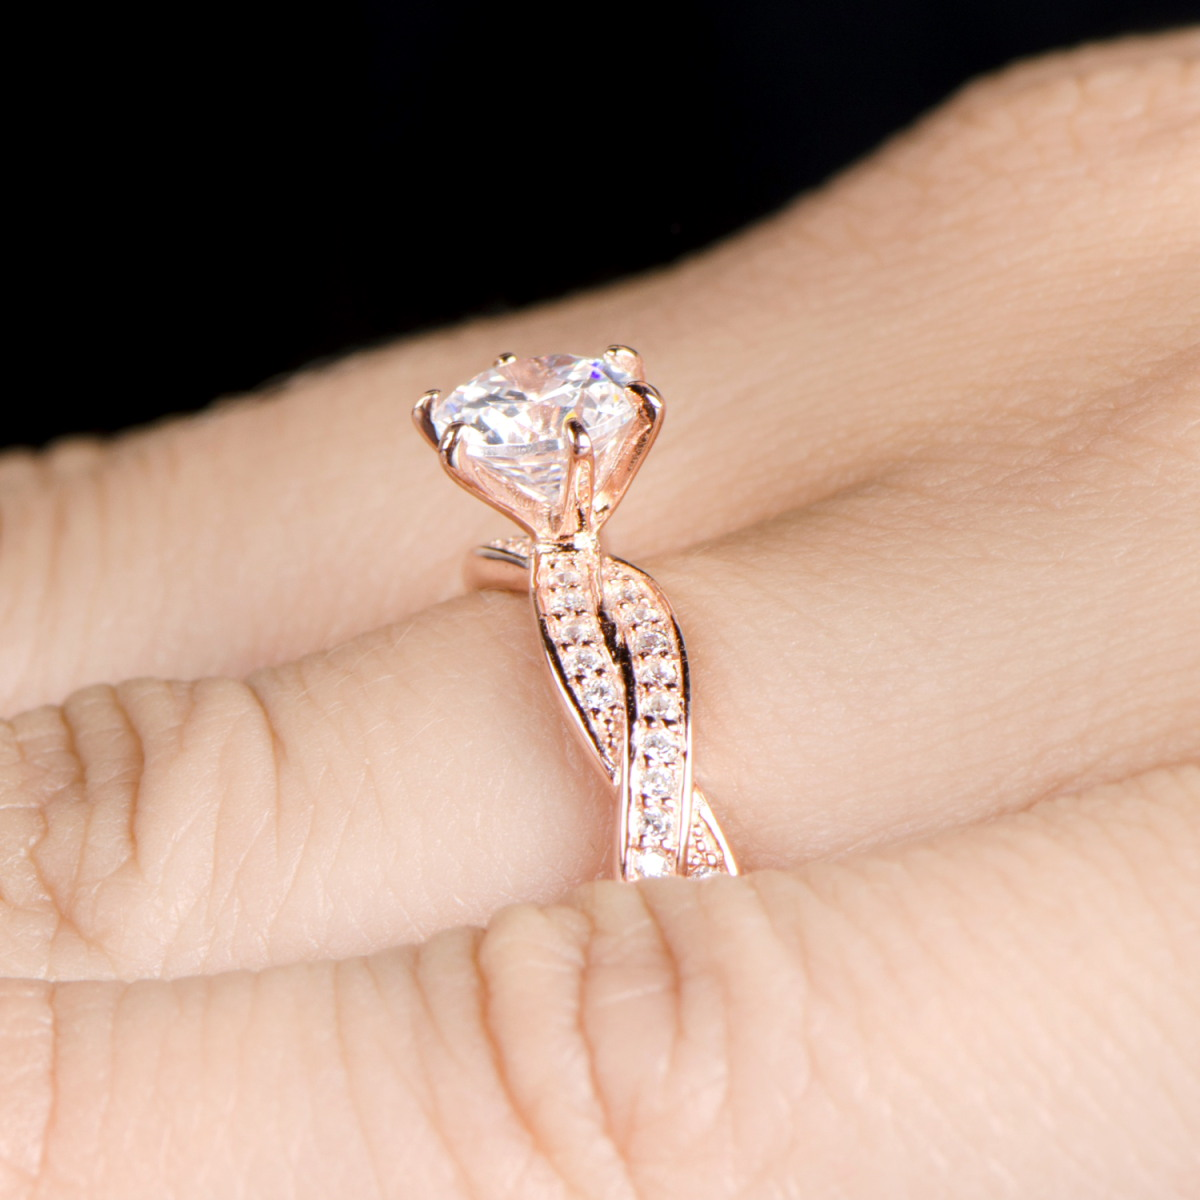 ellip solitaire products fiona rings r ring knot imagine rose gold celtic engagement